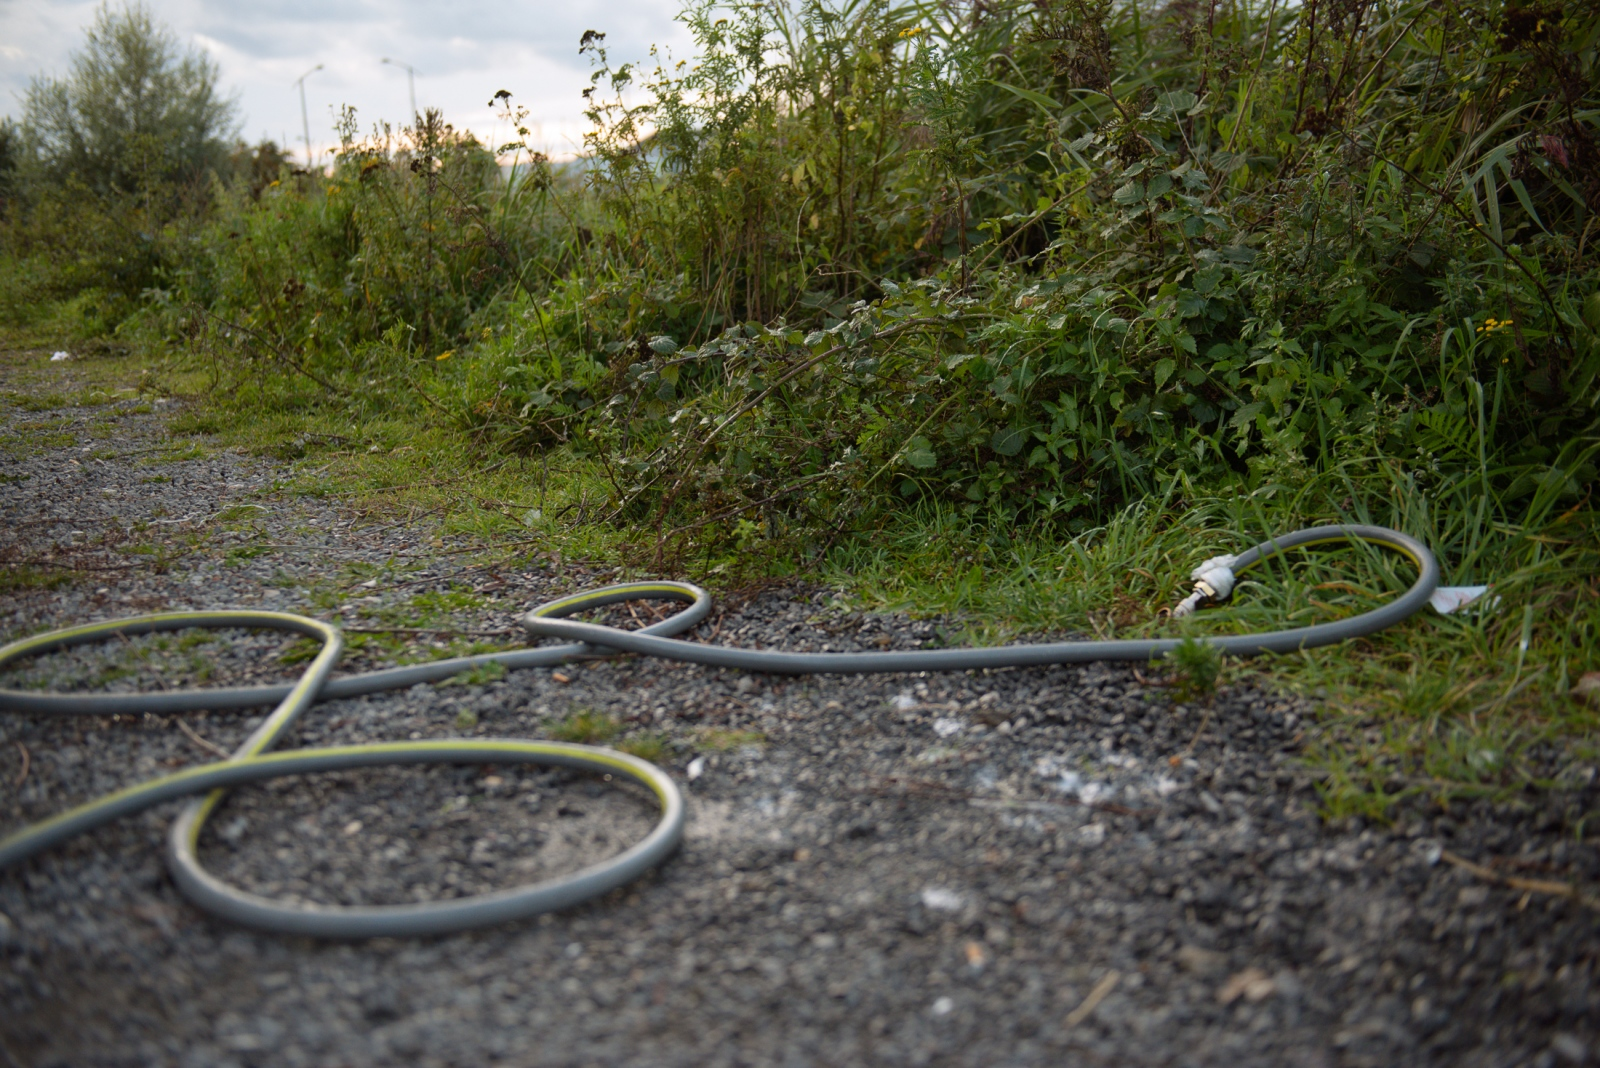 August 31, 2017 - Calais, France. The hose pictured here was the only access to safe water refugees had for most of 2017. The men, mostly Afghans, do not live near any of the water points that have been made accessible by the government-led ngo.